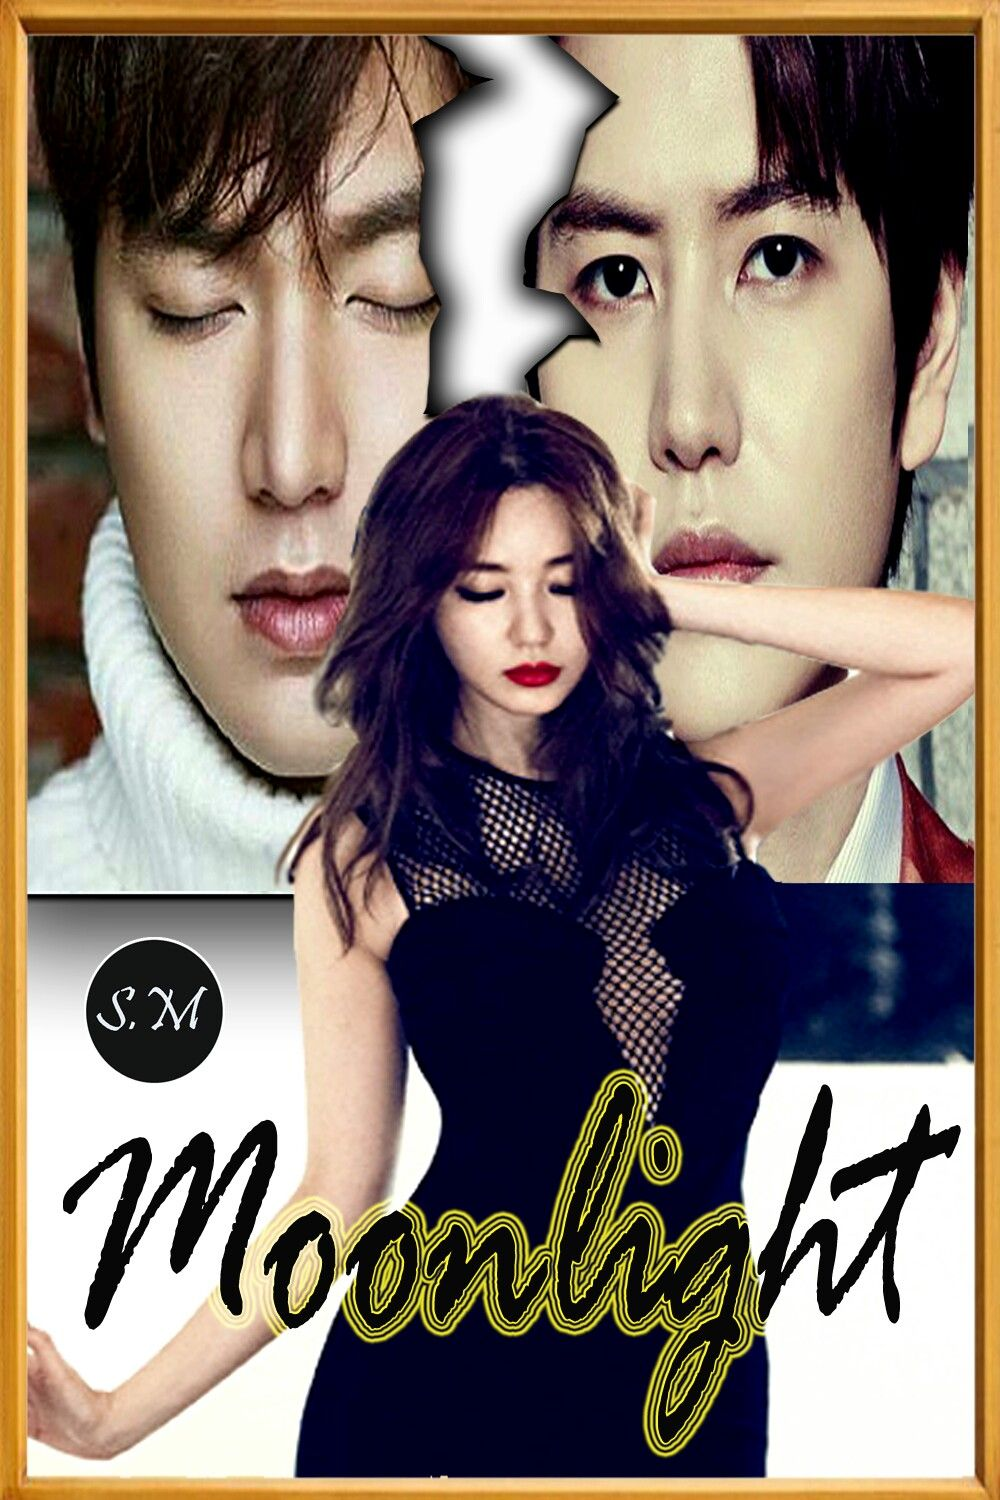 Yoon eun hye and top dating books